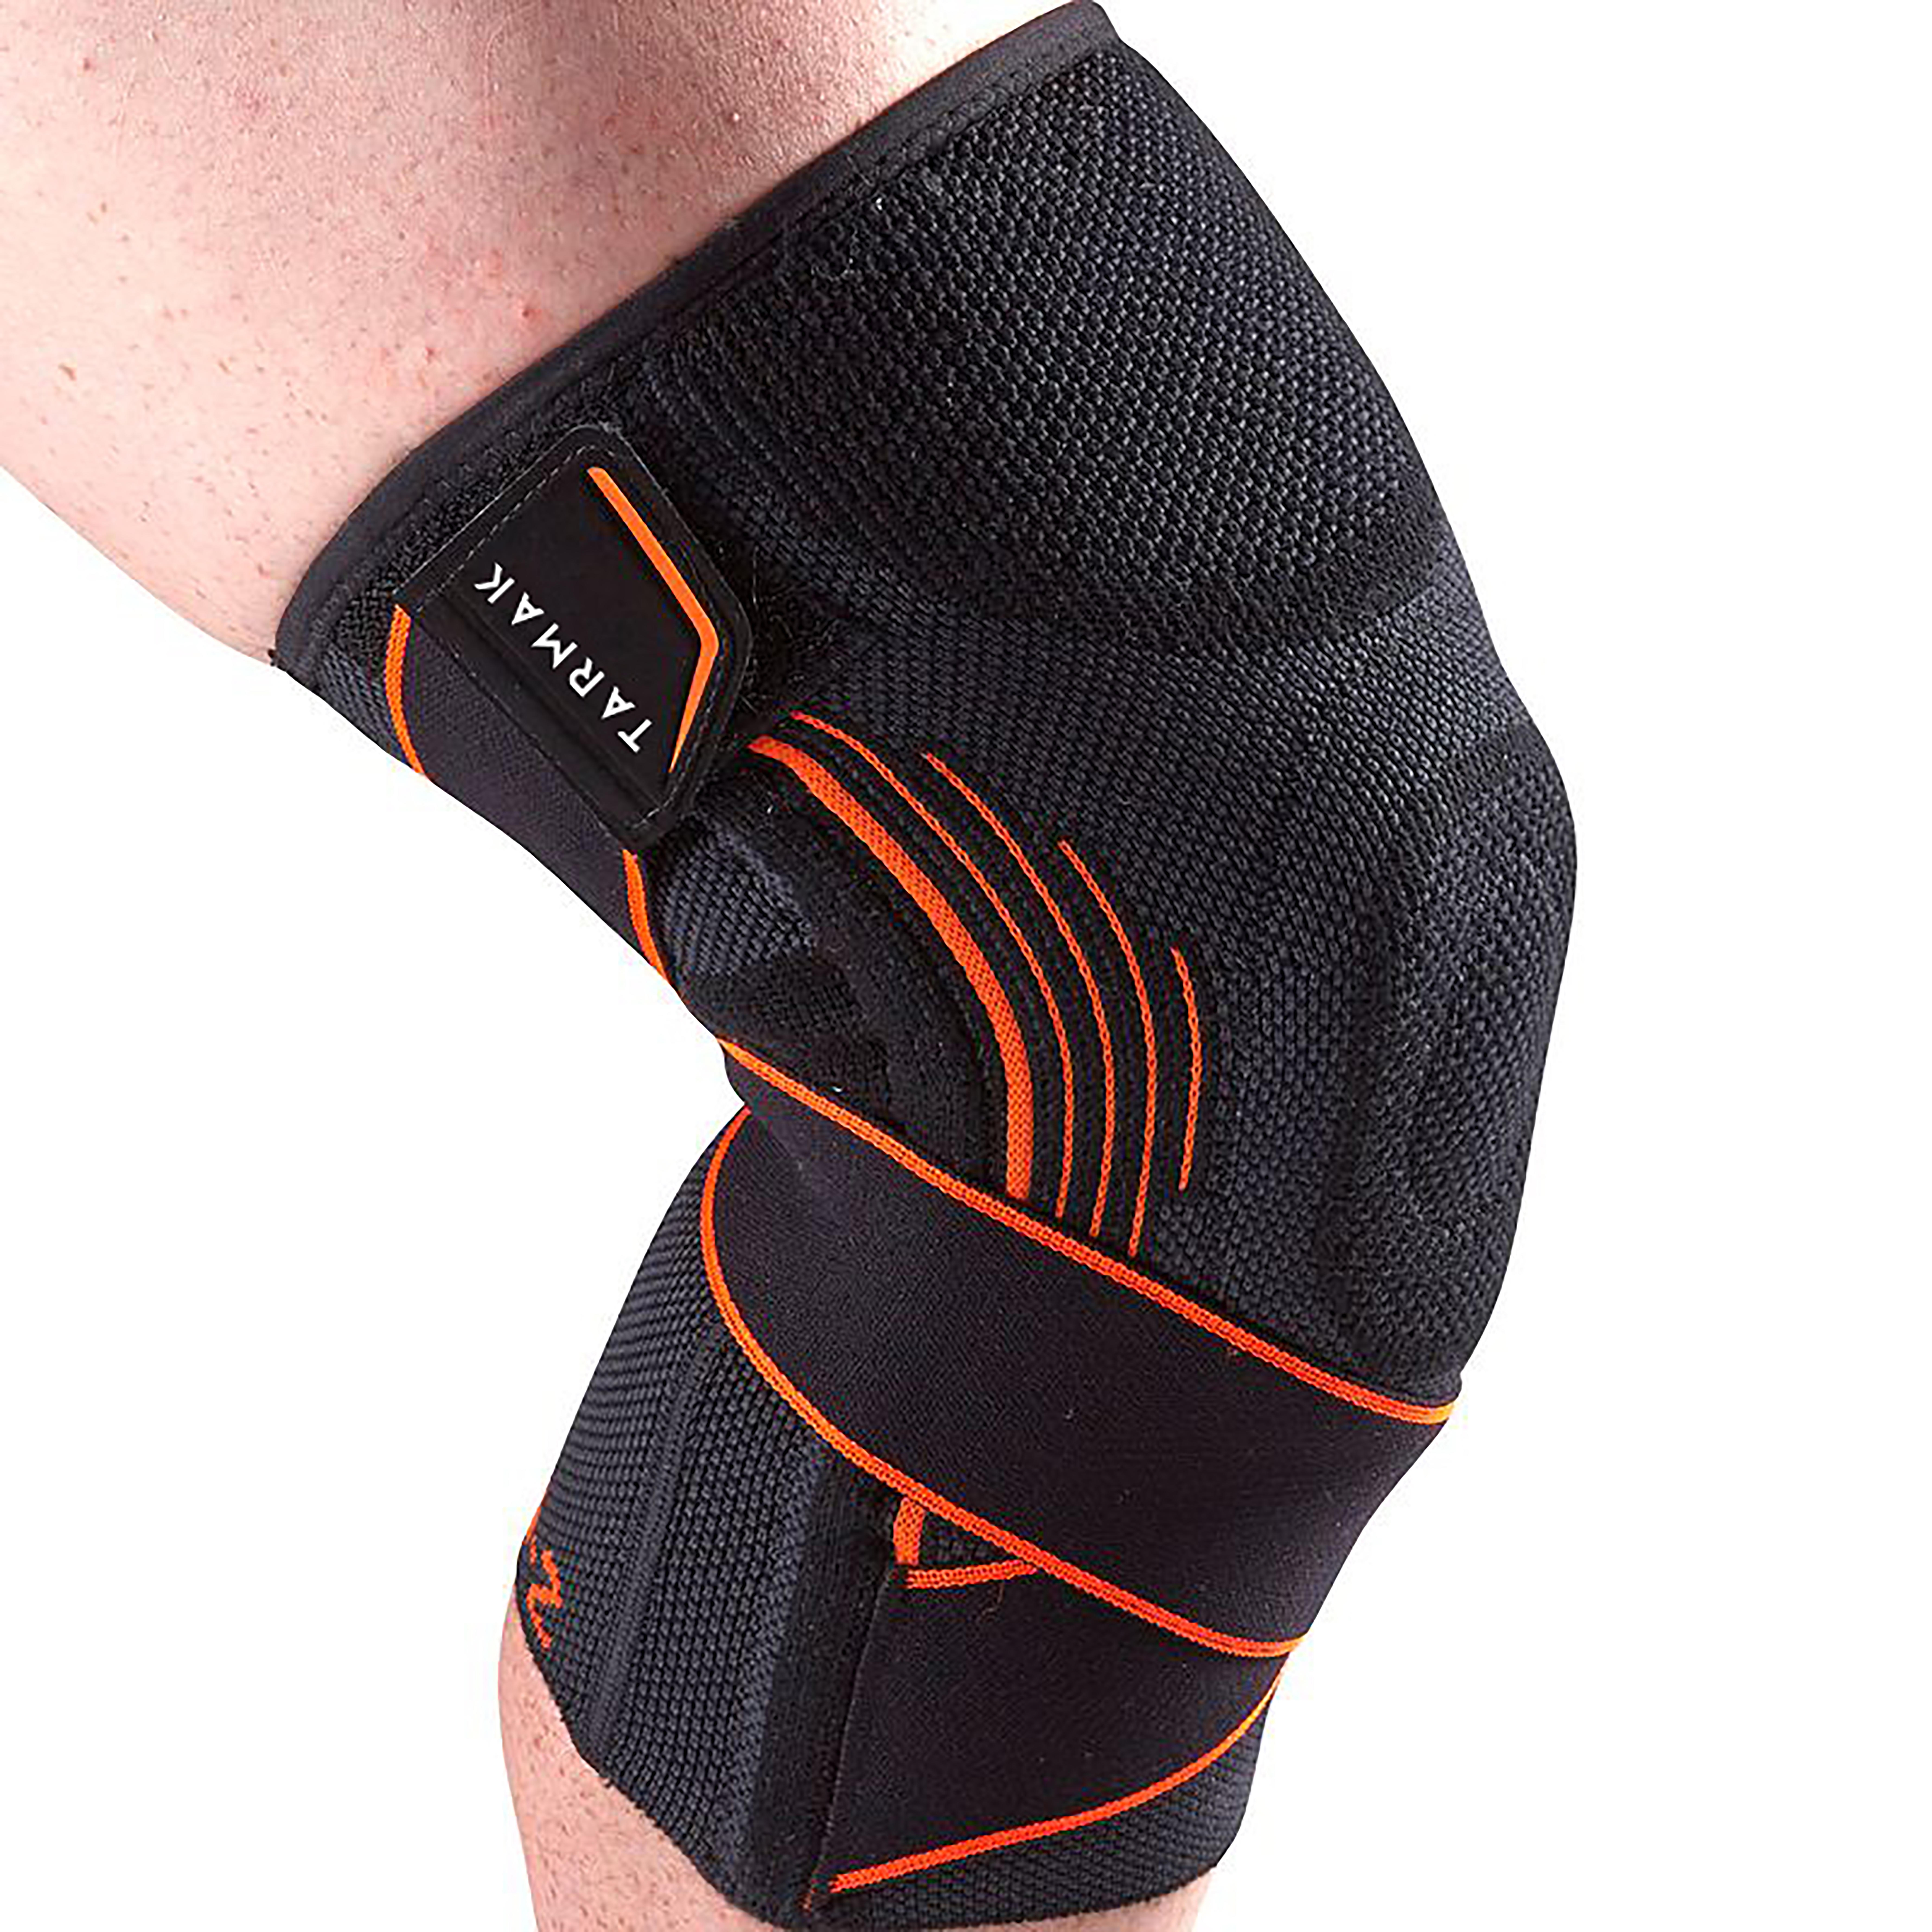 Mid 500 Right/Left Men's/Women's Knee Ligament Support - Black